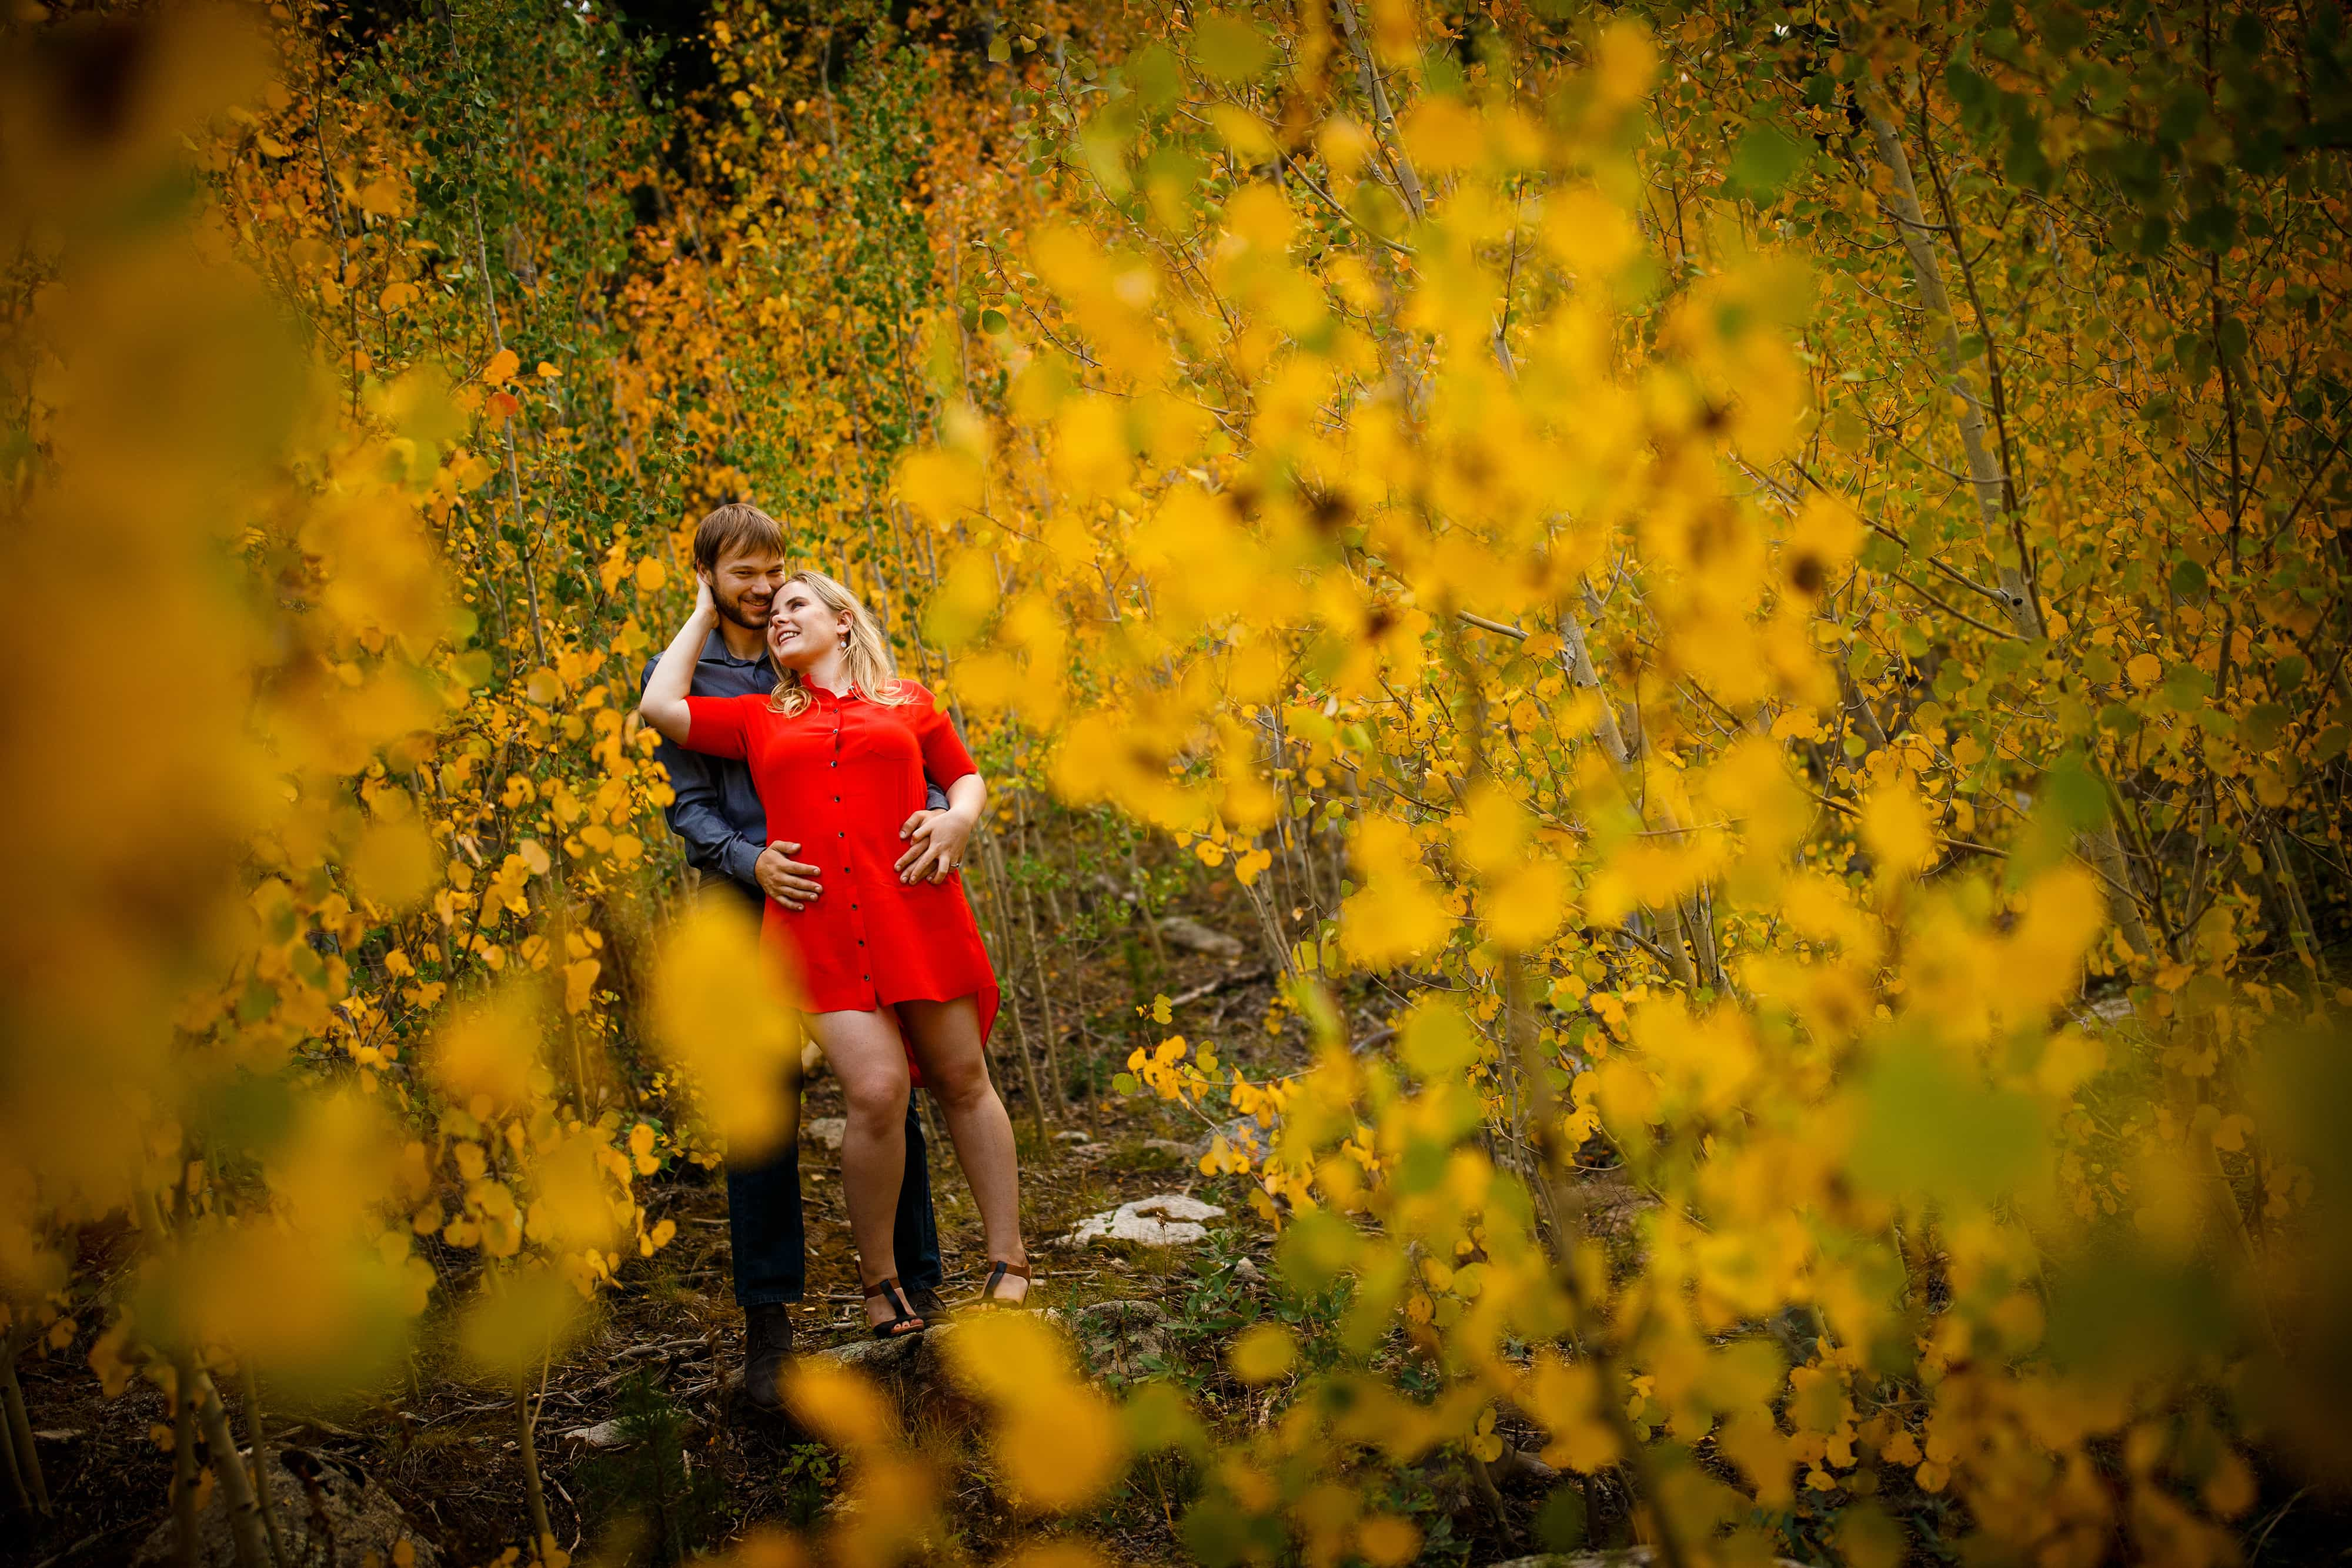 Joel and Coza share a moment together in a grove of aspen trees along Gap road in Golden Gate Canyon State Park during their fall Golden engagement